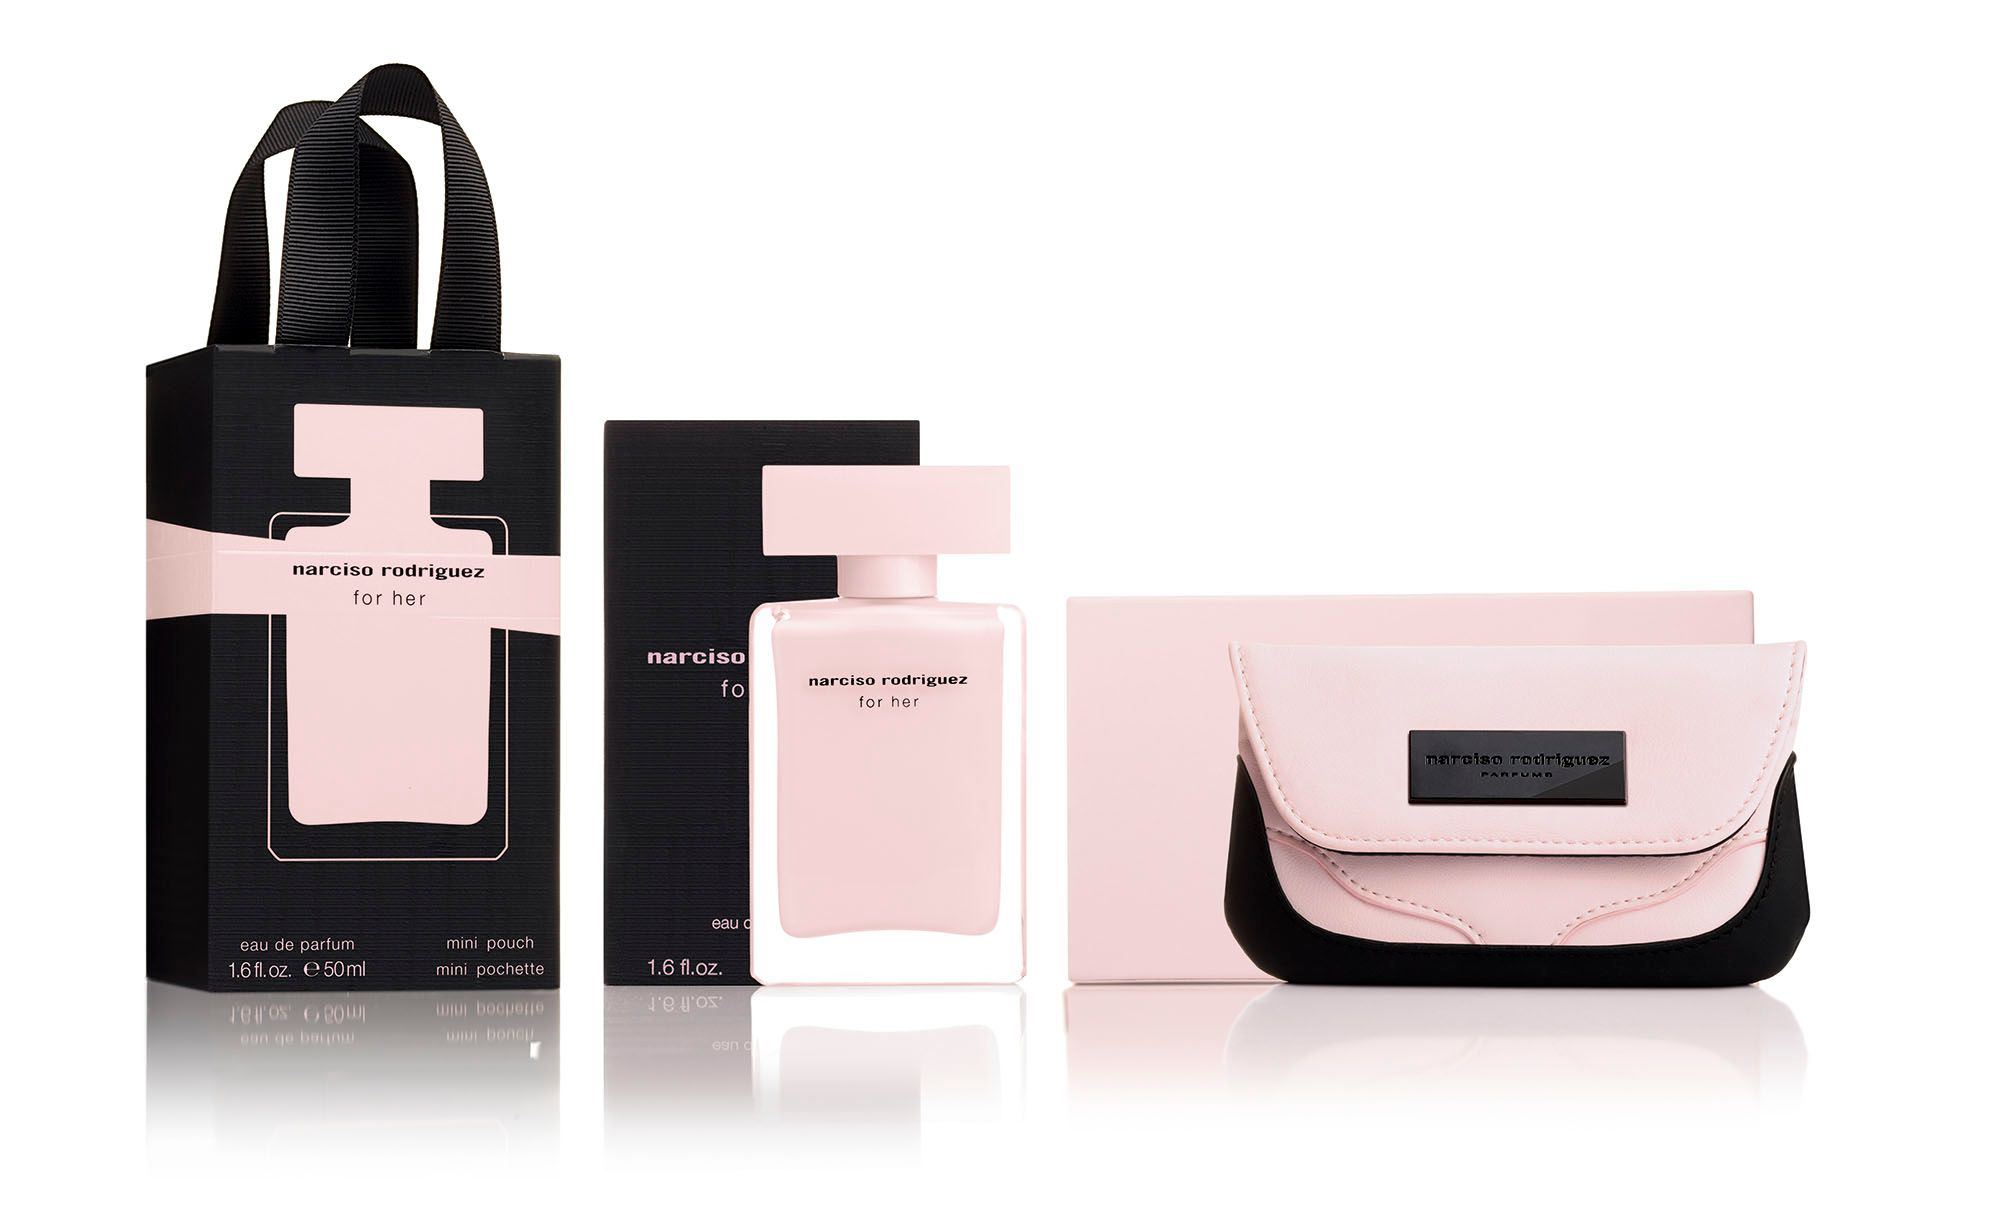 For Her Eau de Parfum 50ml and Mini Pouch